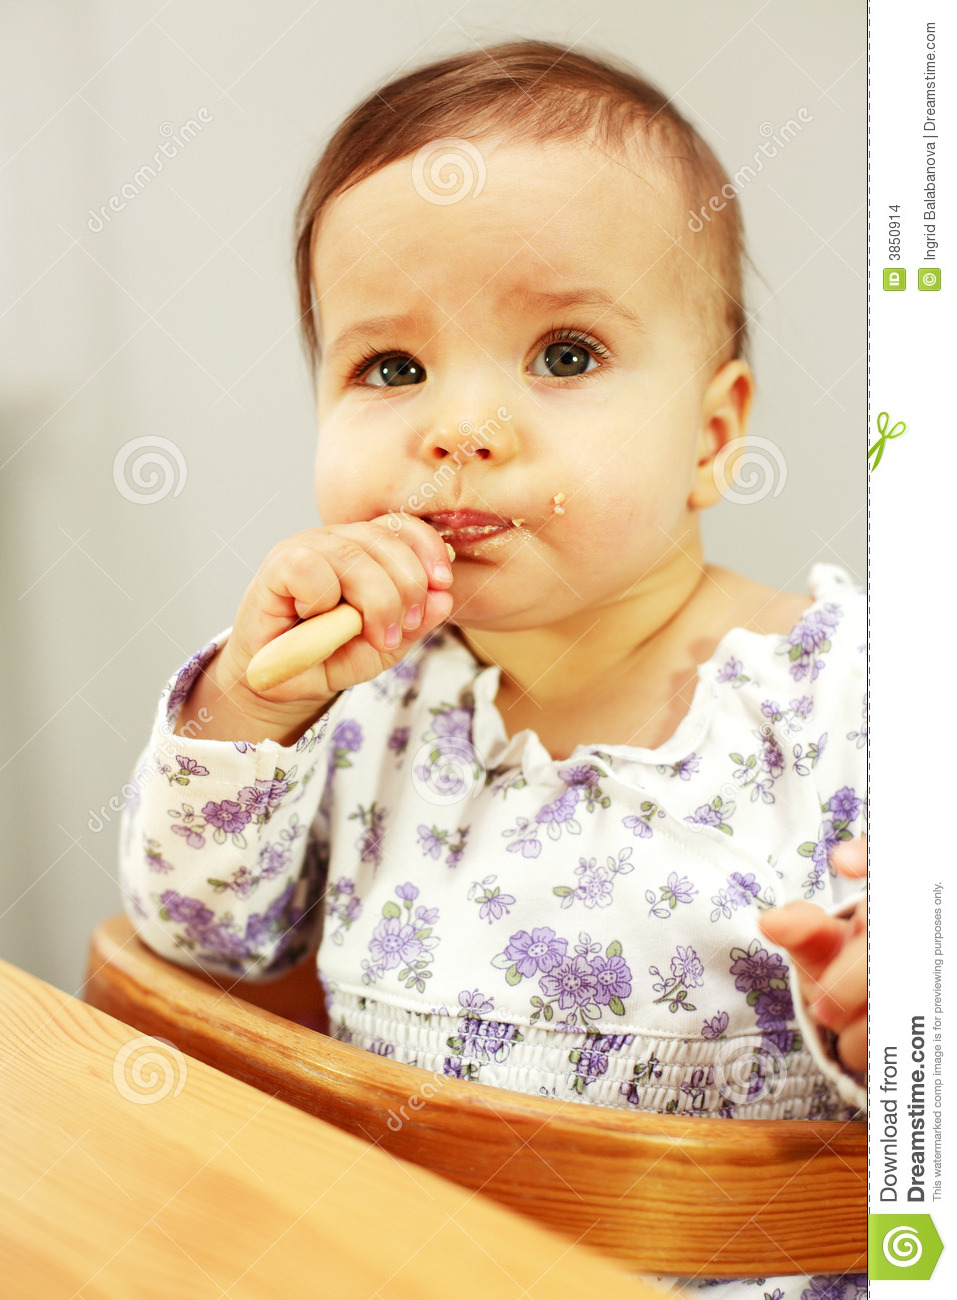 small cute baby eating stock photo. image of feed, appetite - 3850914